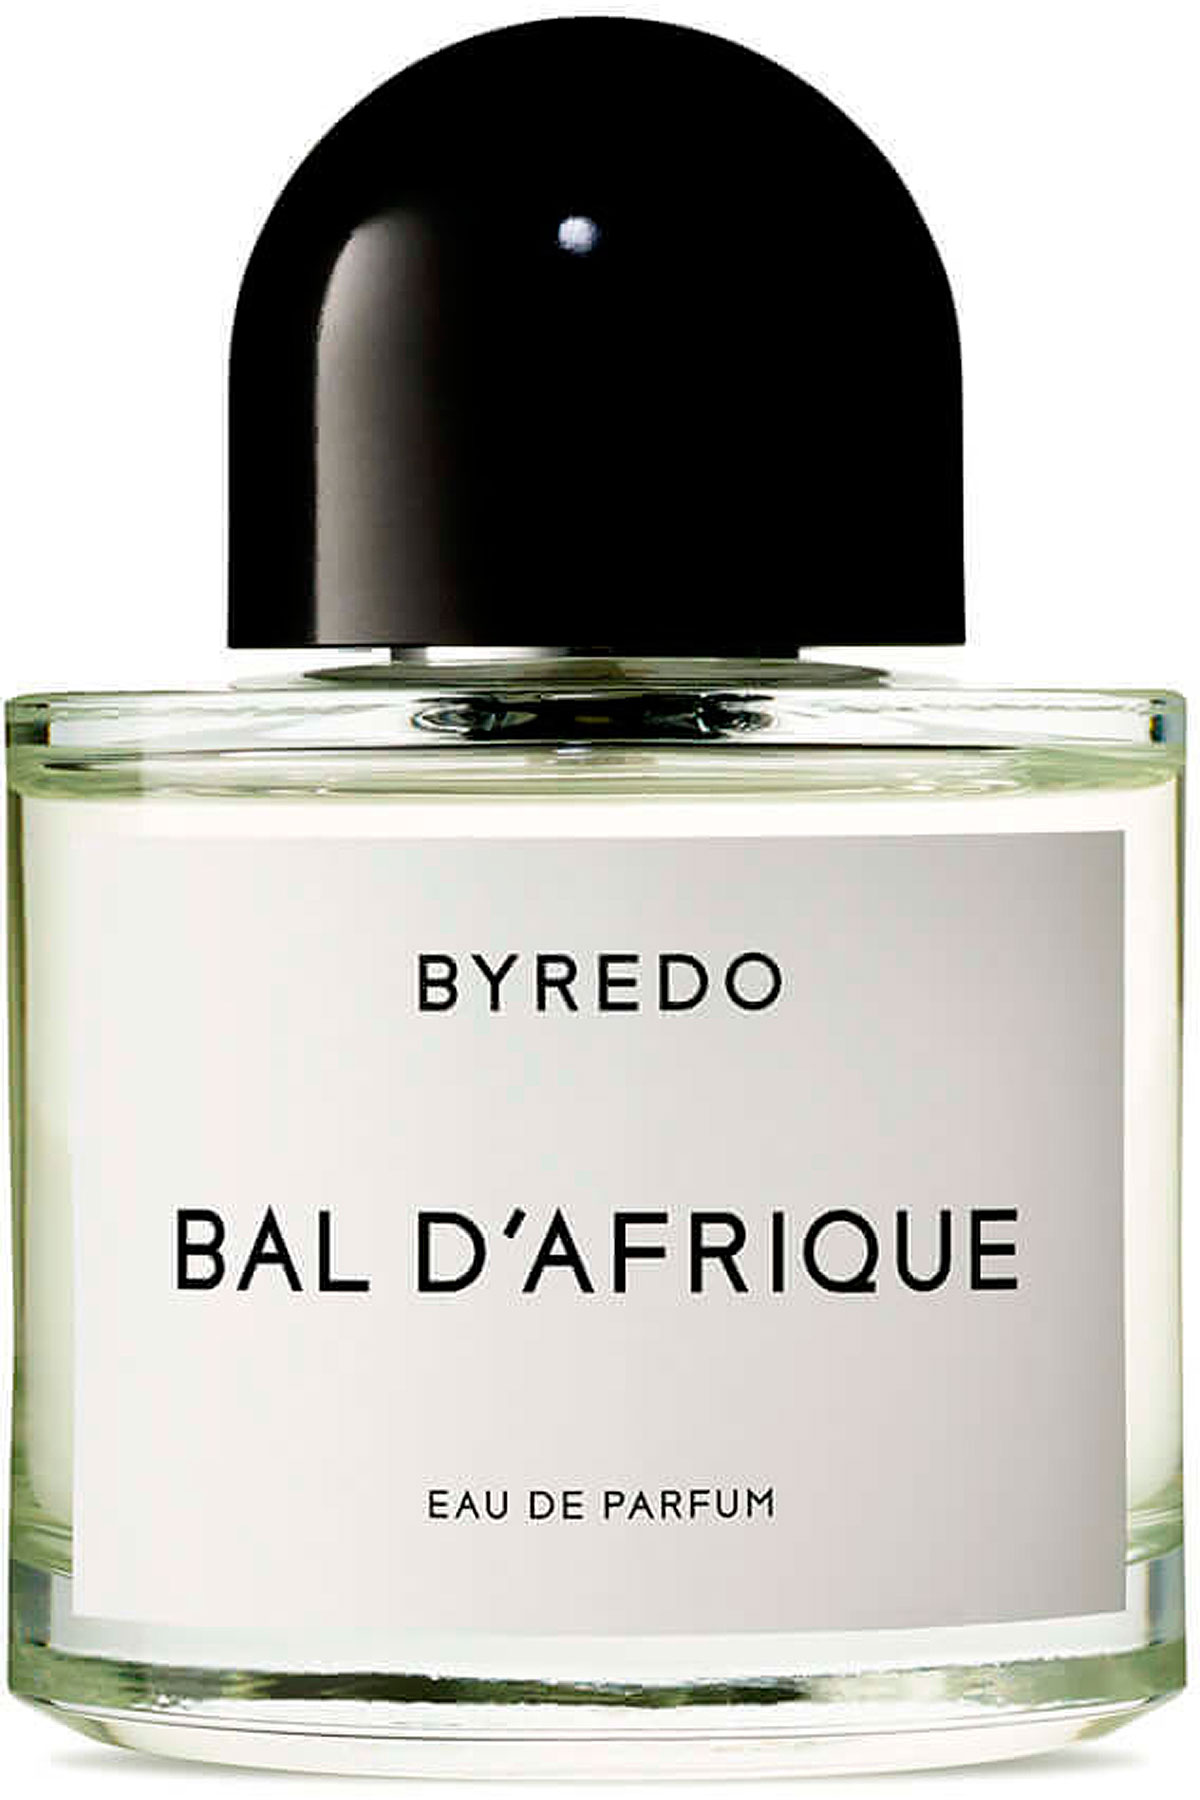 Byredo Fragrances for Women, Bal D Afrique - Eau De Parfum - 100 Ml, 2019, 100 ml